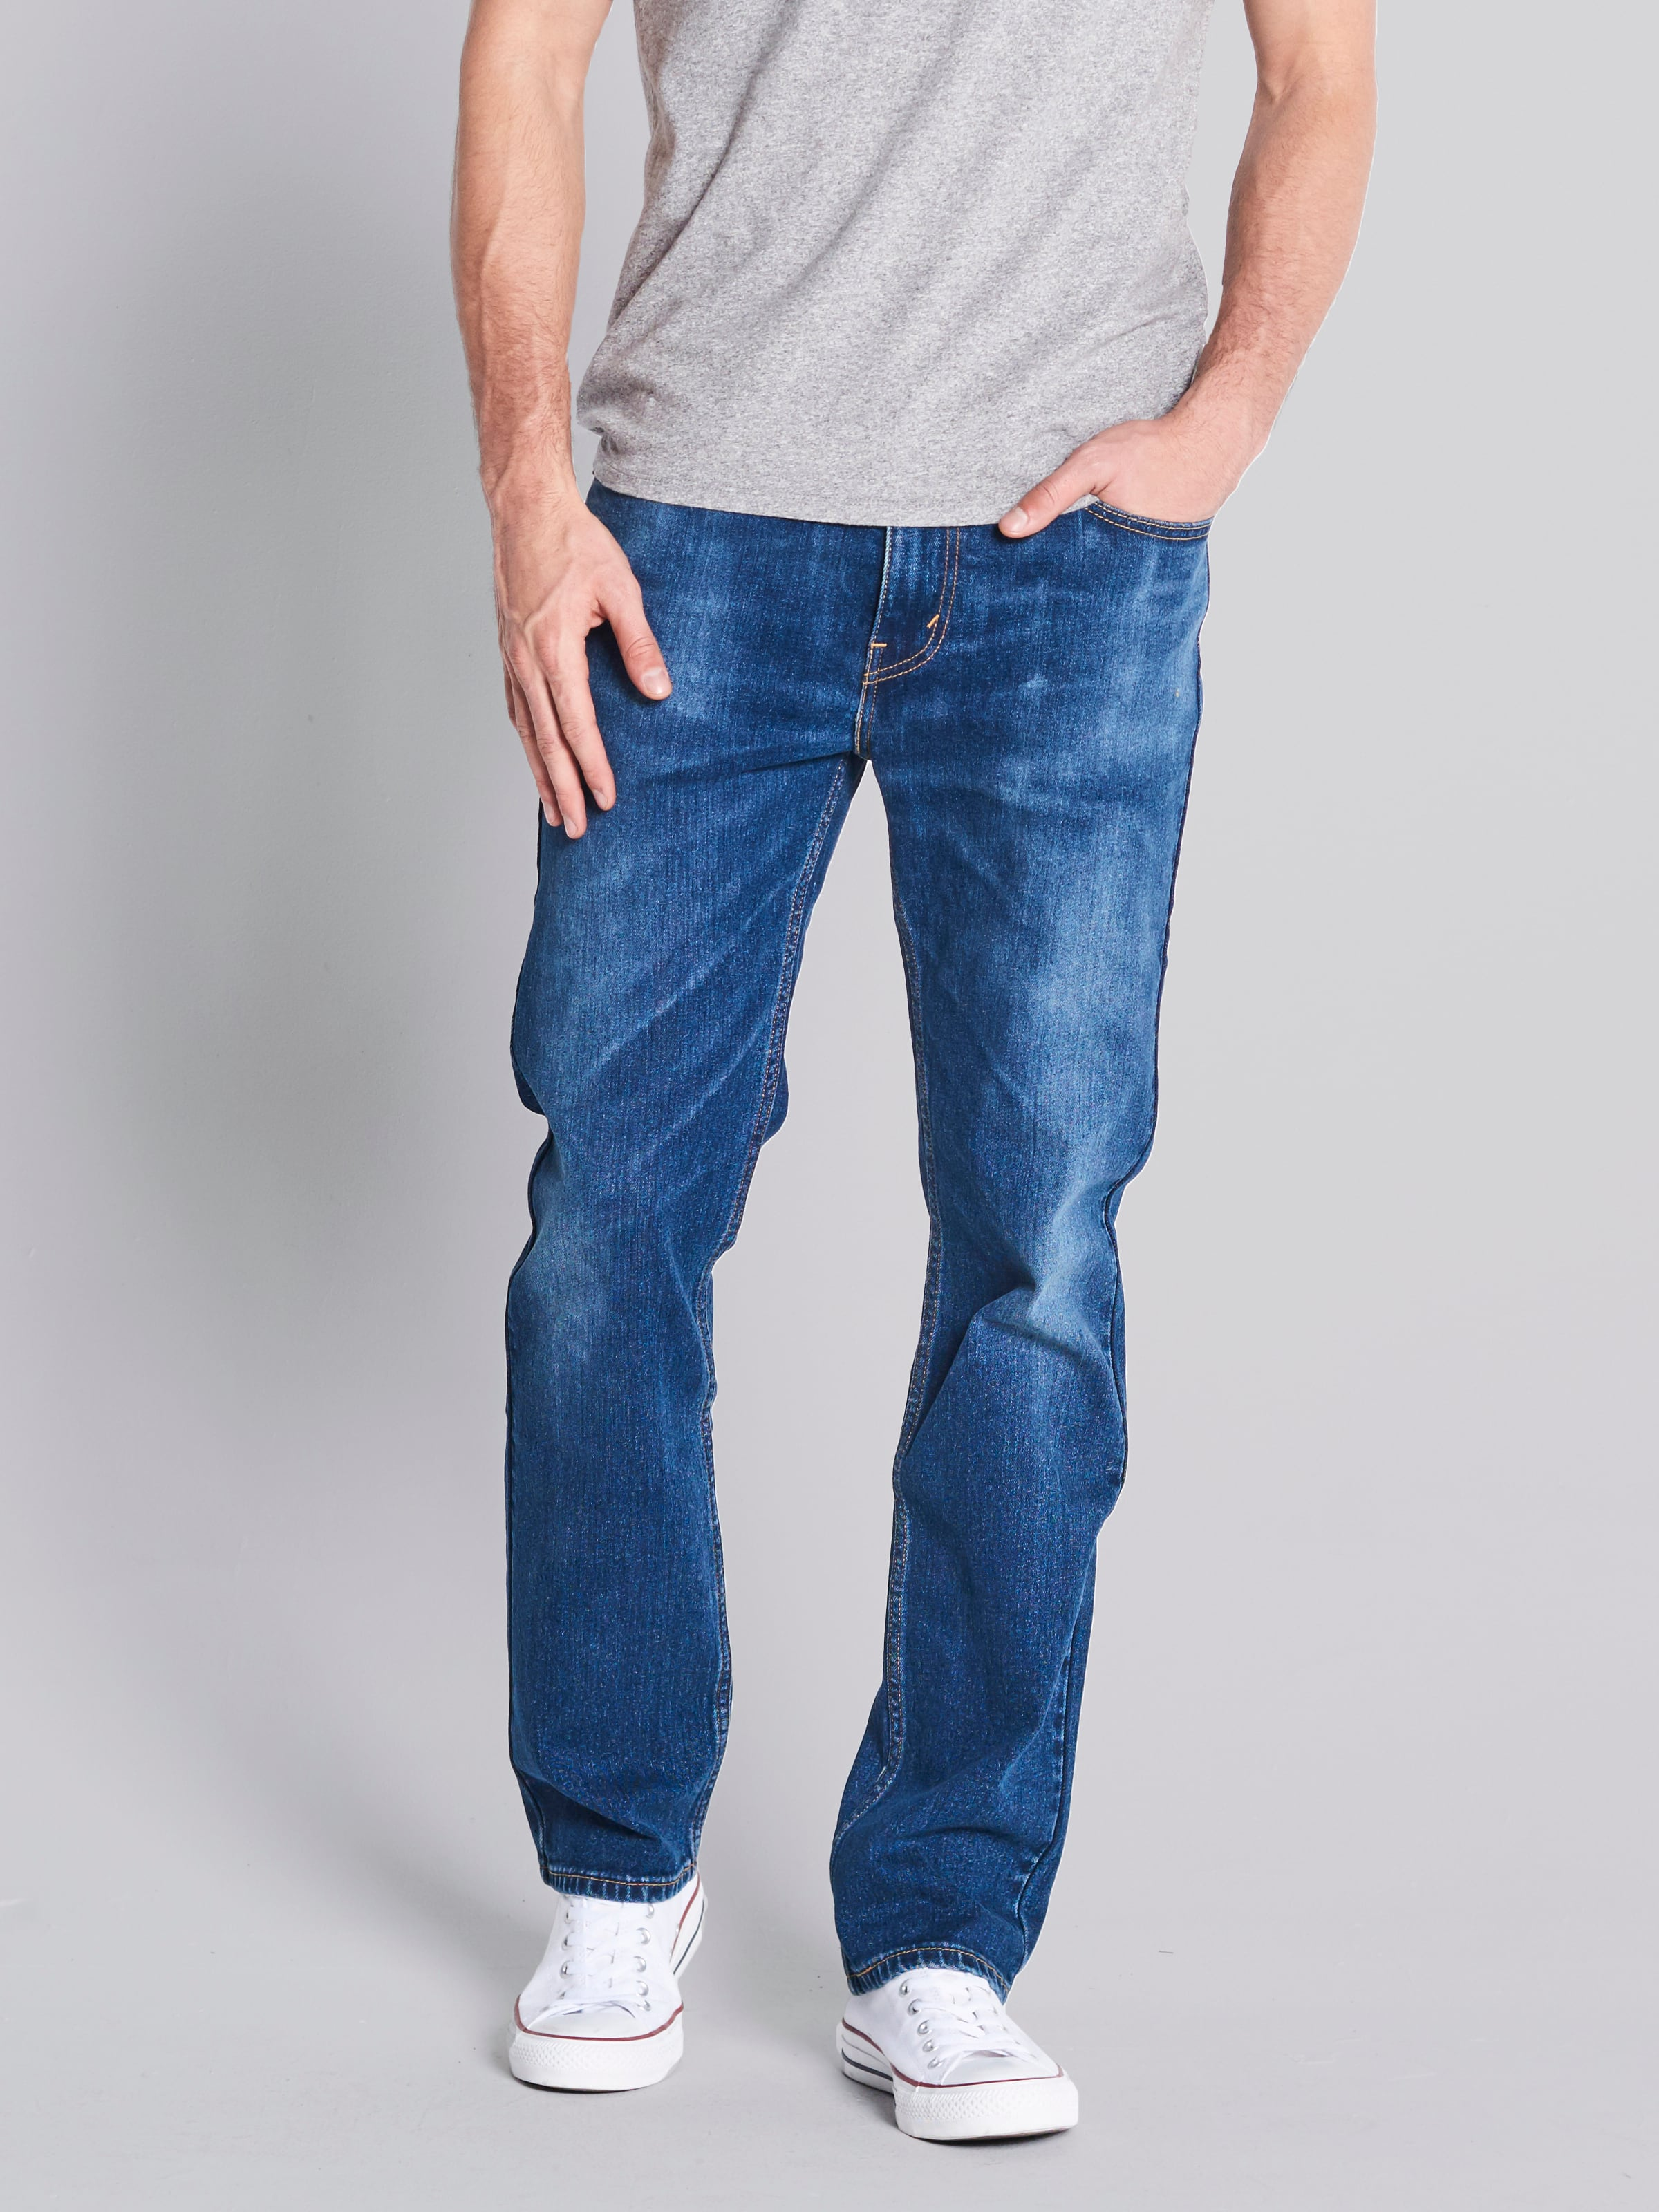 Levi's 516 Slim Fit Straight Flotsam